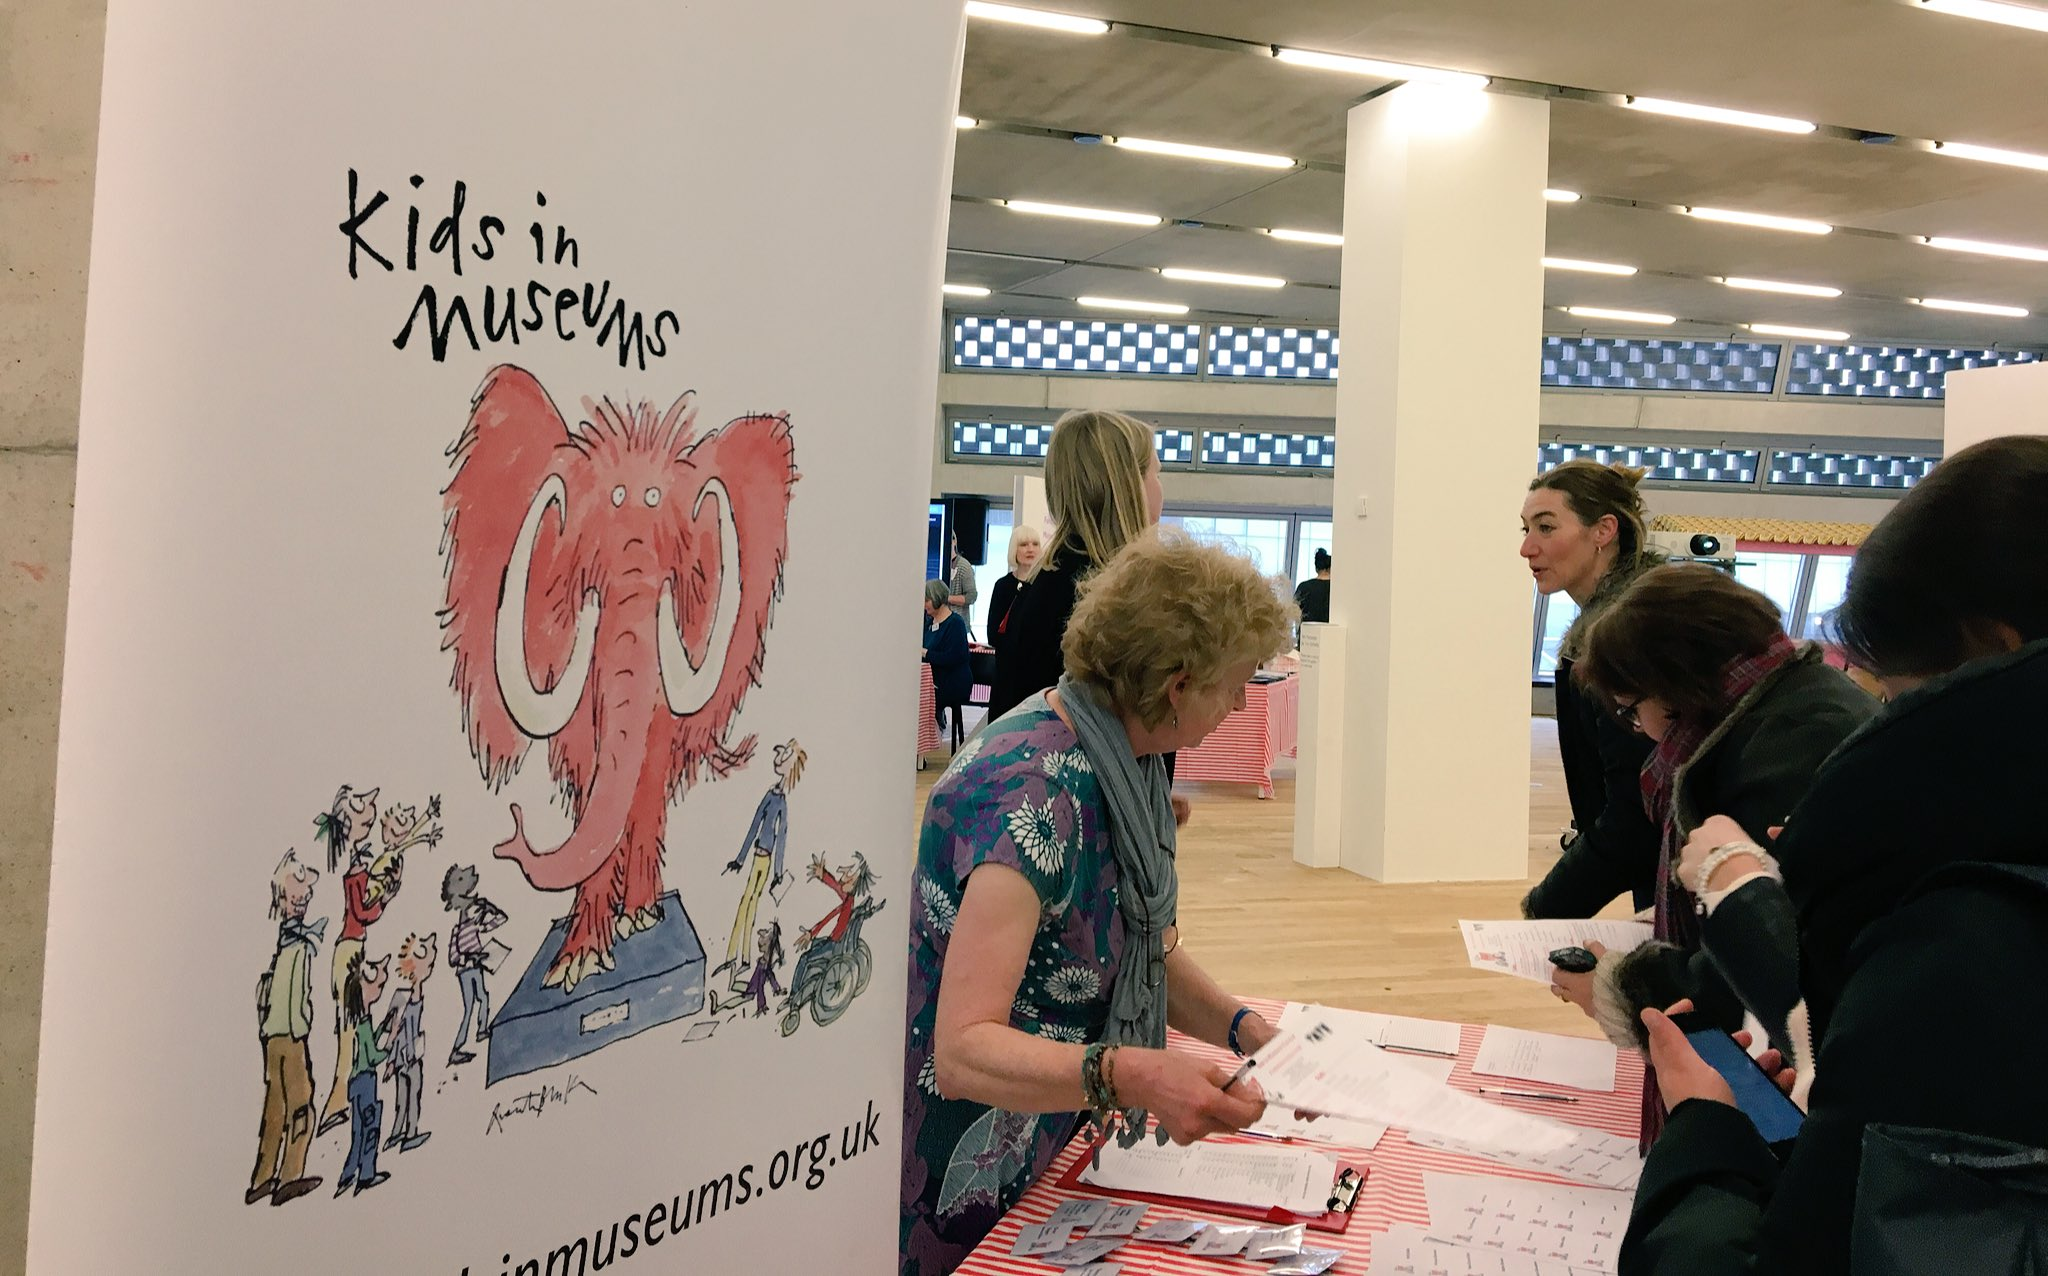 The @kidsinmuseums Carnival has begun! Hopeve made it to @tateexchange @Tate #kimcarnival #minifesto https://t.co/XWyZdBtWdX